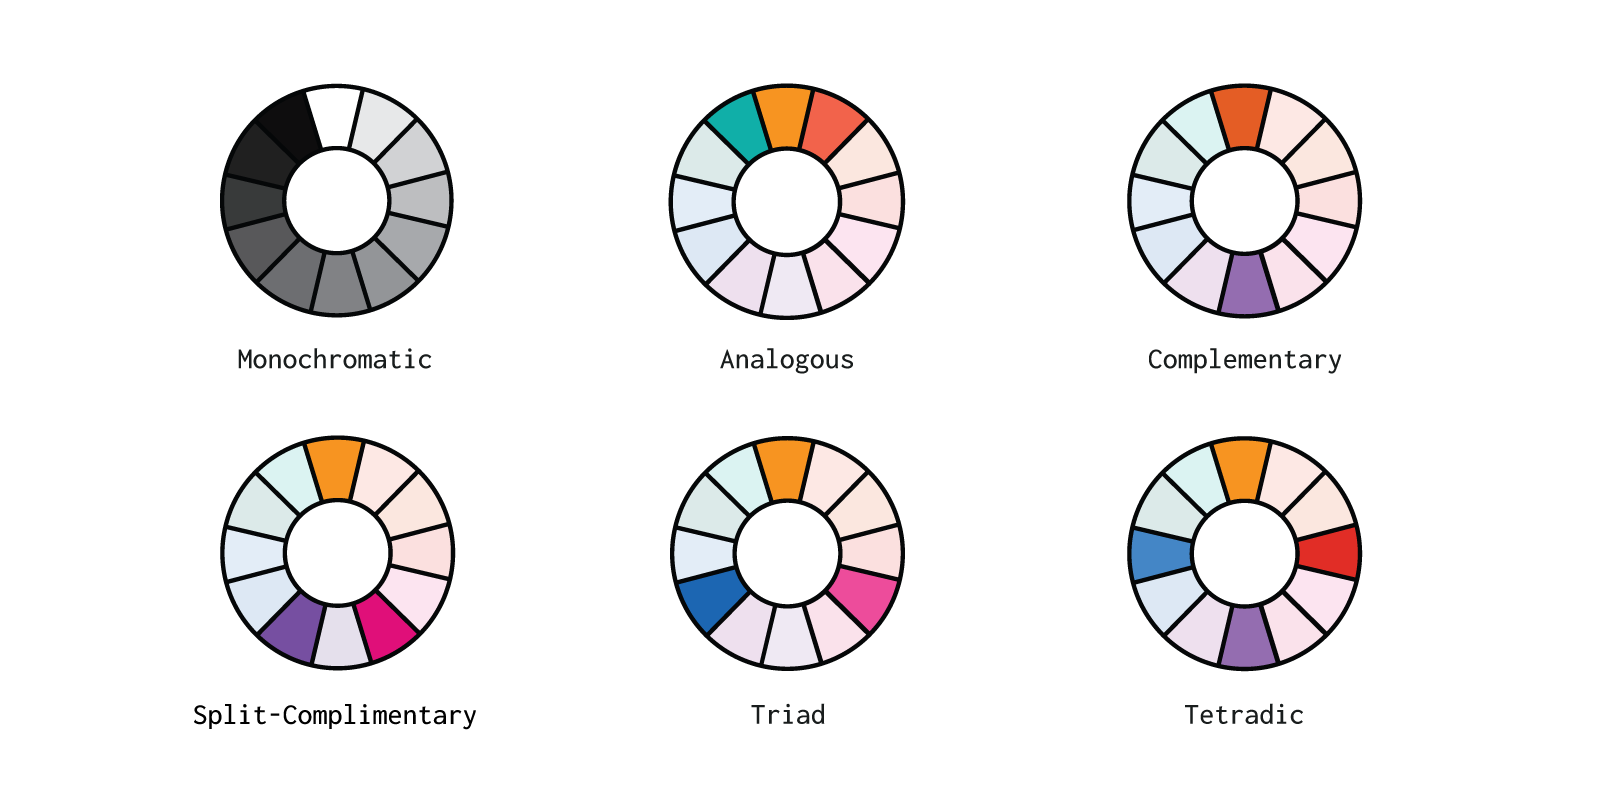 six different types of color pairings shown in color wheels, monochromatic, analogous, complementary, split-complimentary, triad, and tetradic